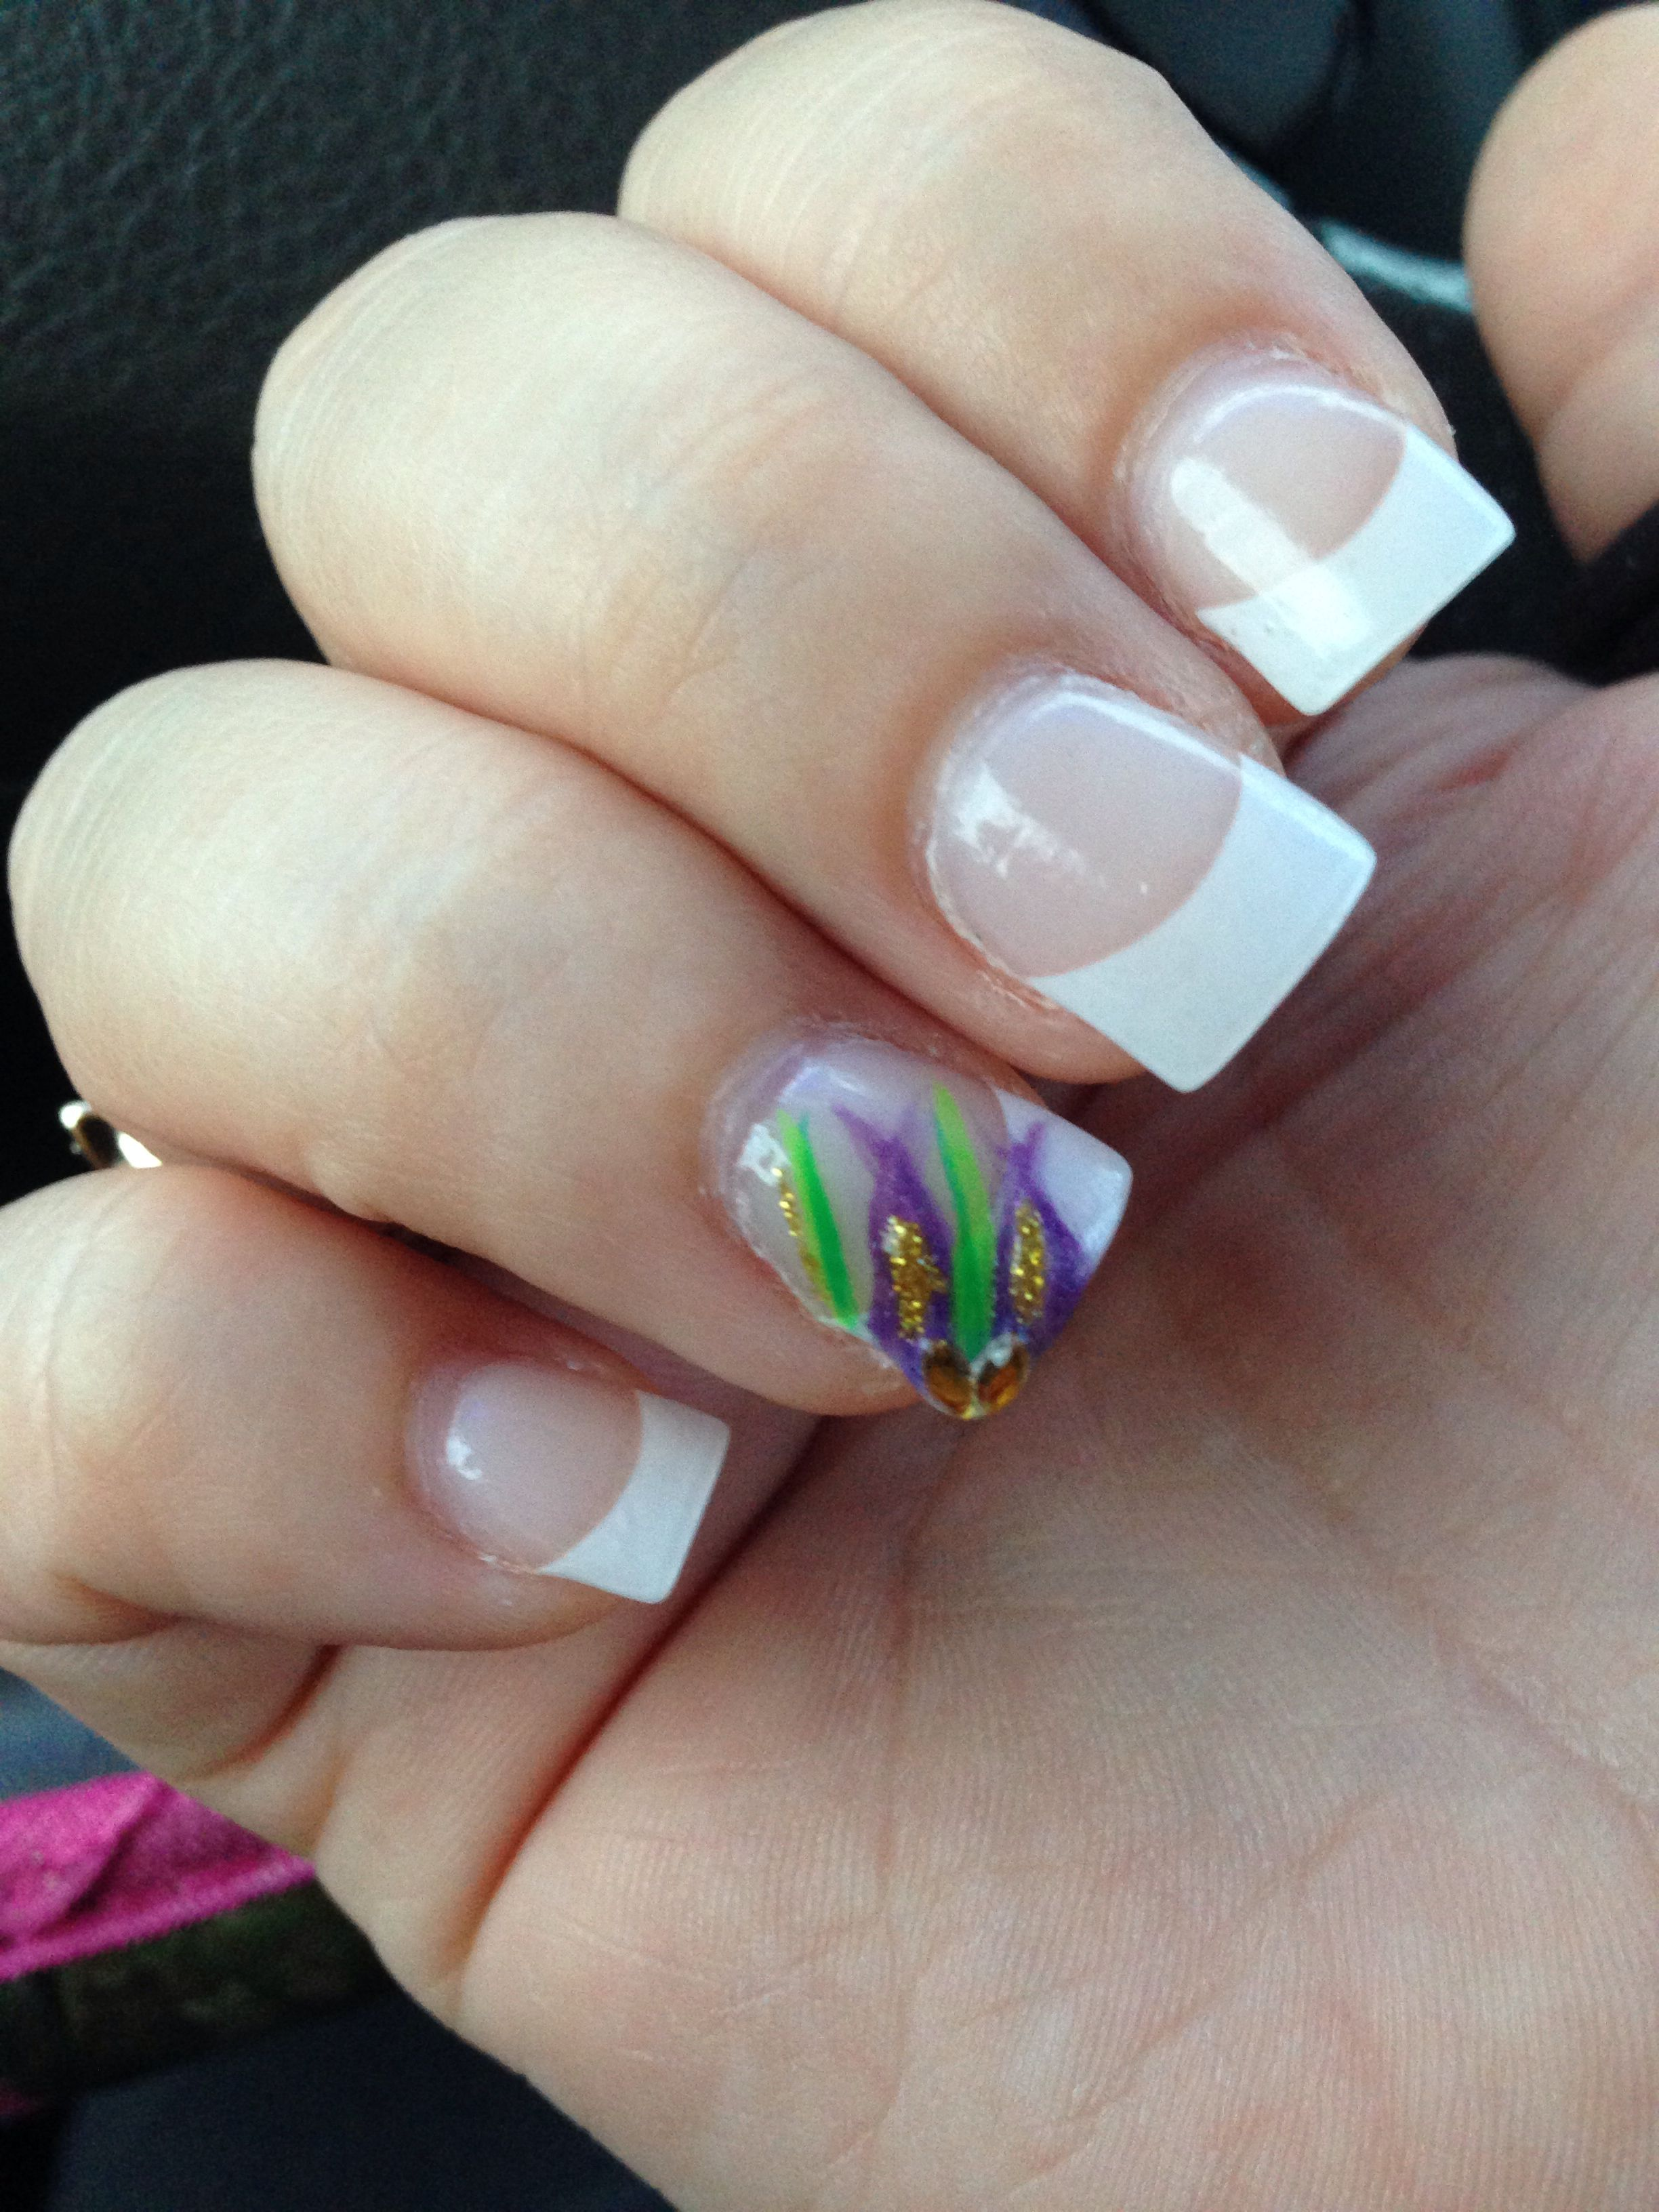 accent mardi gras nails Simple | nails | Pinterest | Mardi gras ...